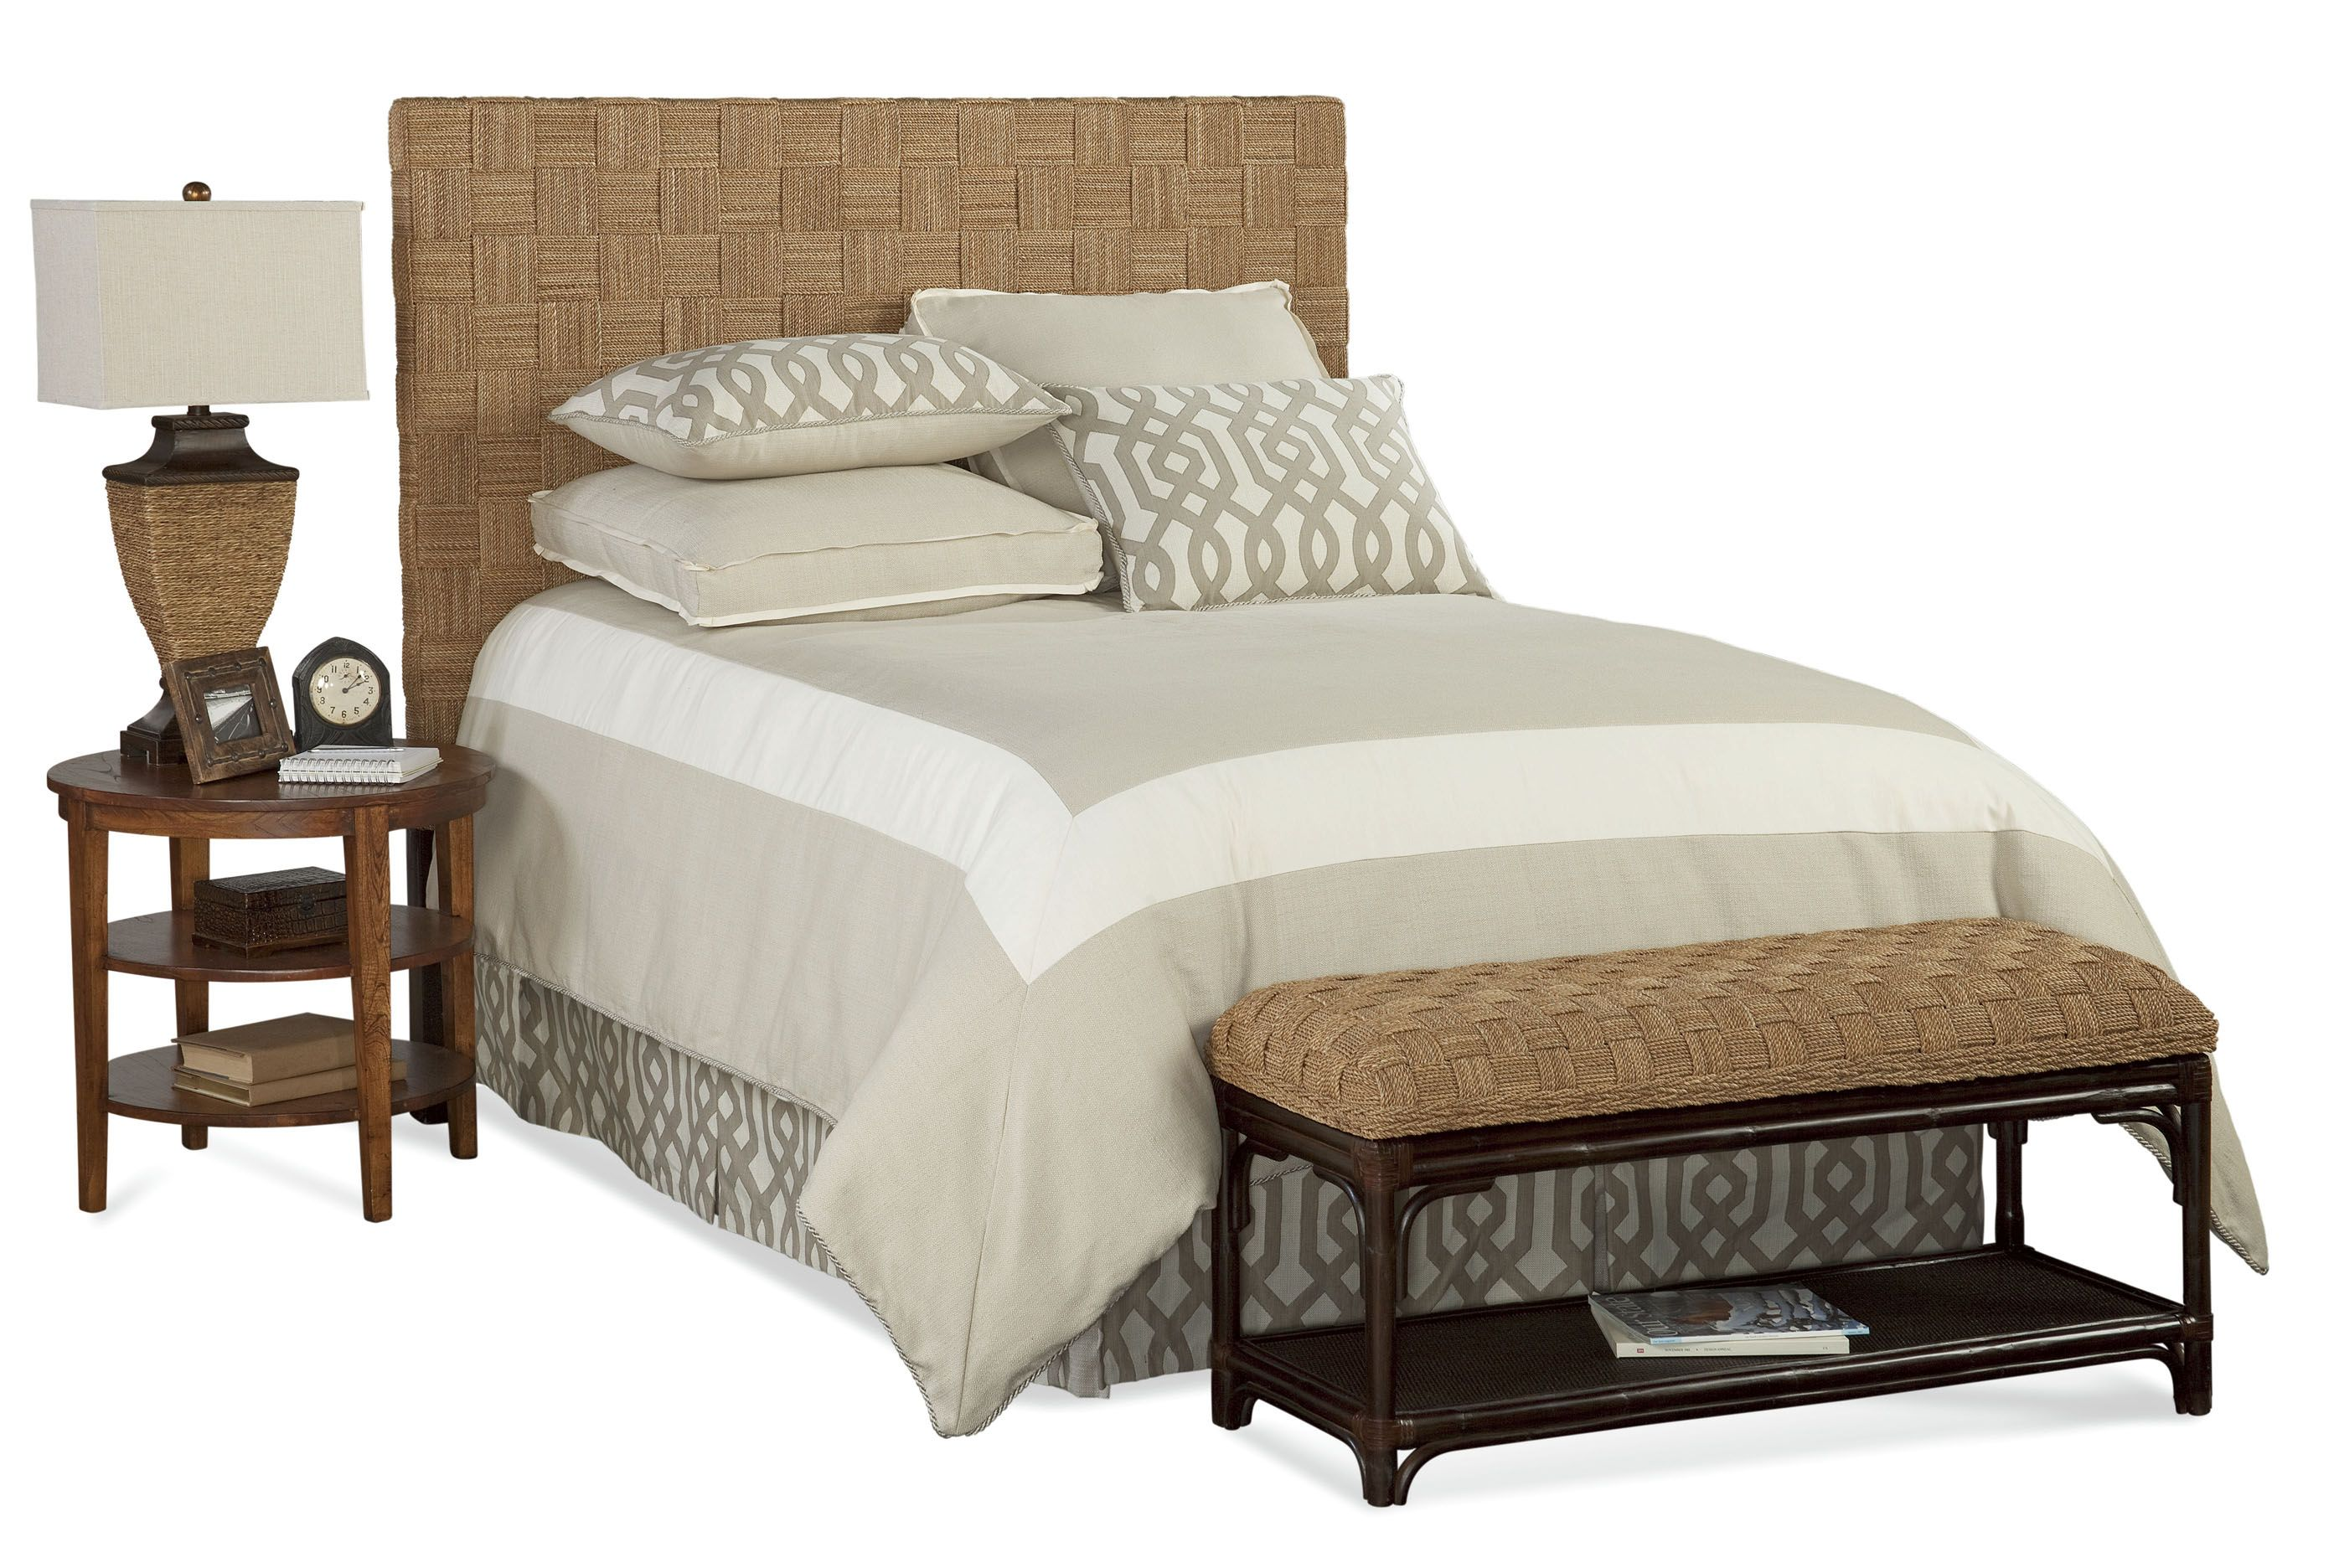 Shop For Braxton Culler Queen Headboard, And Other Bedroom Beds At Garden City  Furniture In Garden City Beach, SC, South Carolina, Horry County.